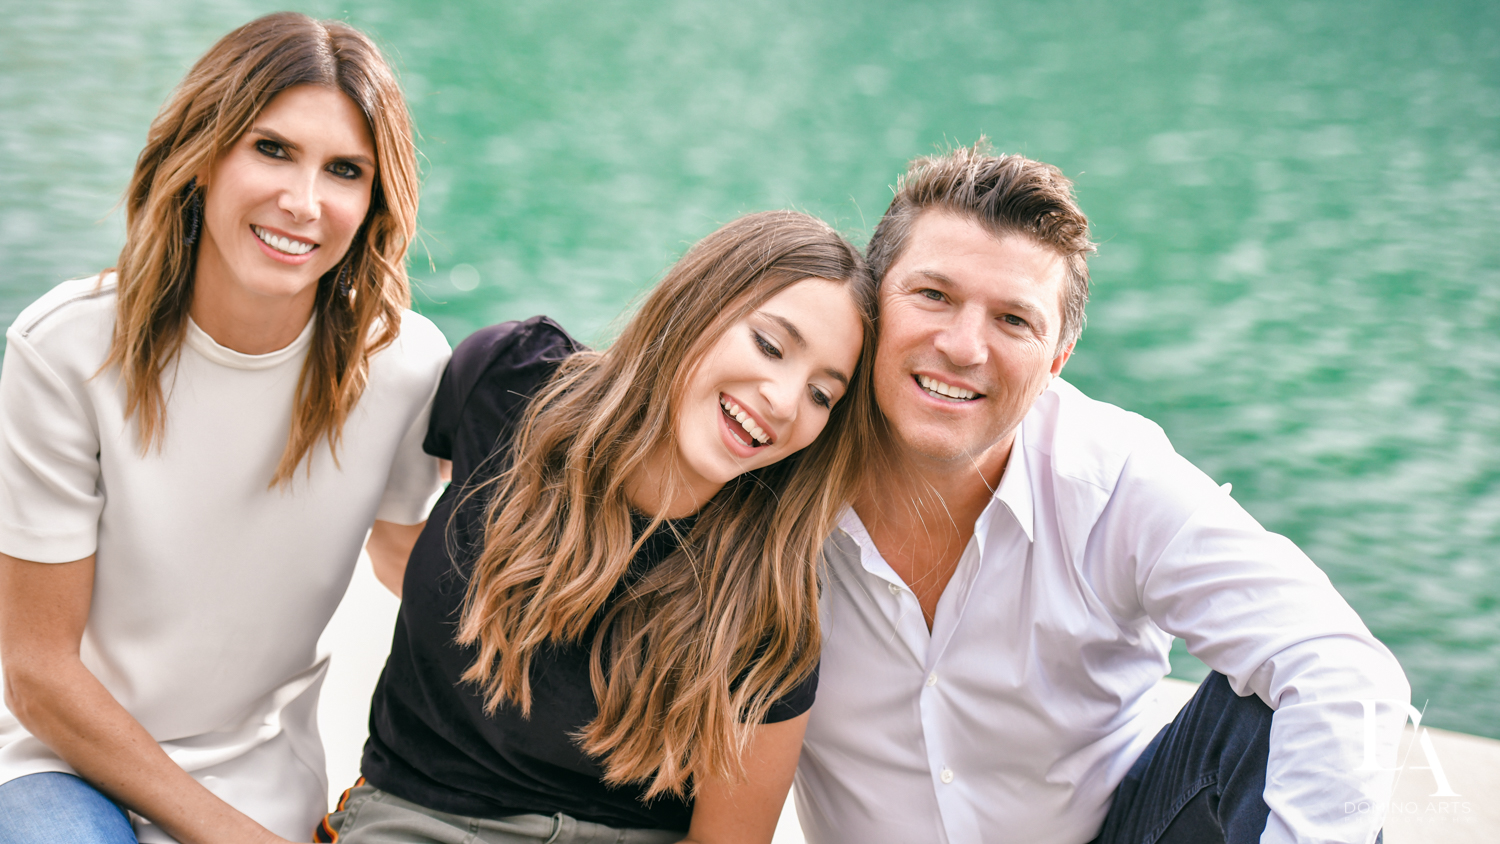 Parents at Waterfront Photo Session in Miami by Domino Arts Photography